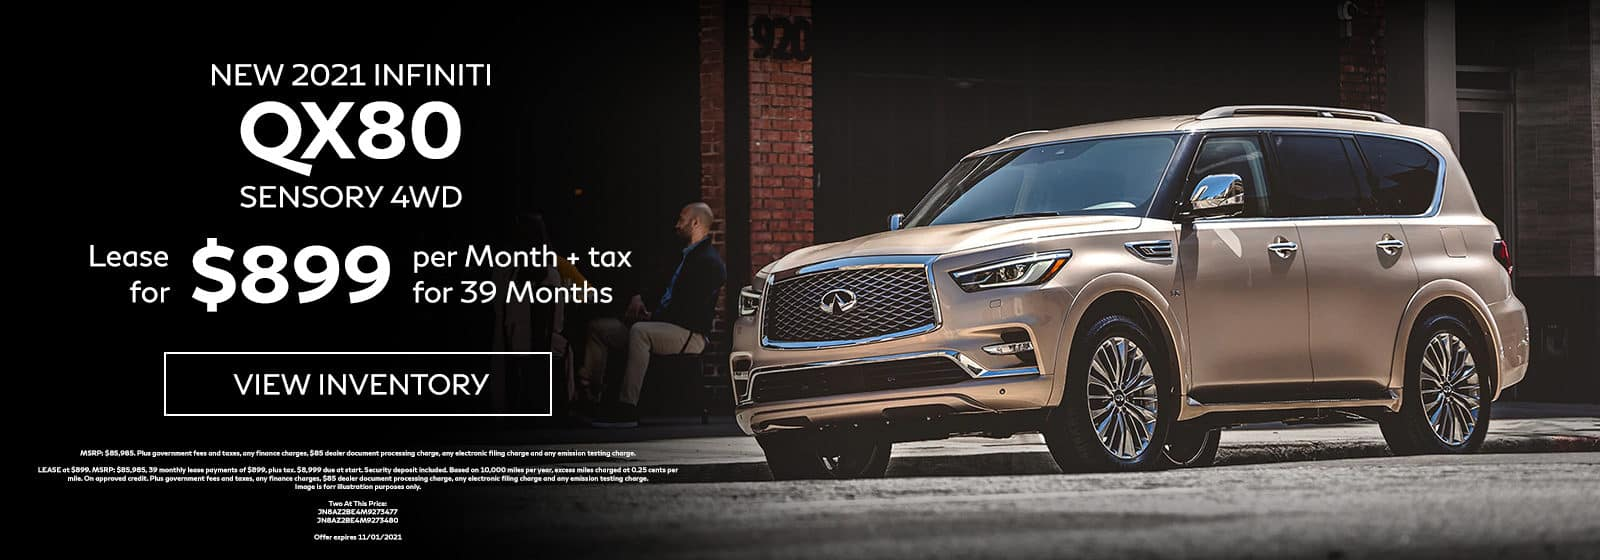 New 2021 INFINITI QX80 SENSORY 4WD. Lease for $899 Per Month + Tax for 39 Months